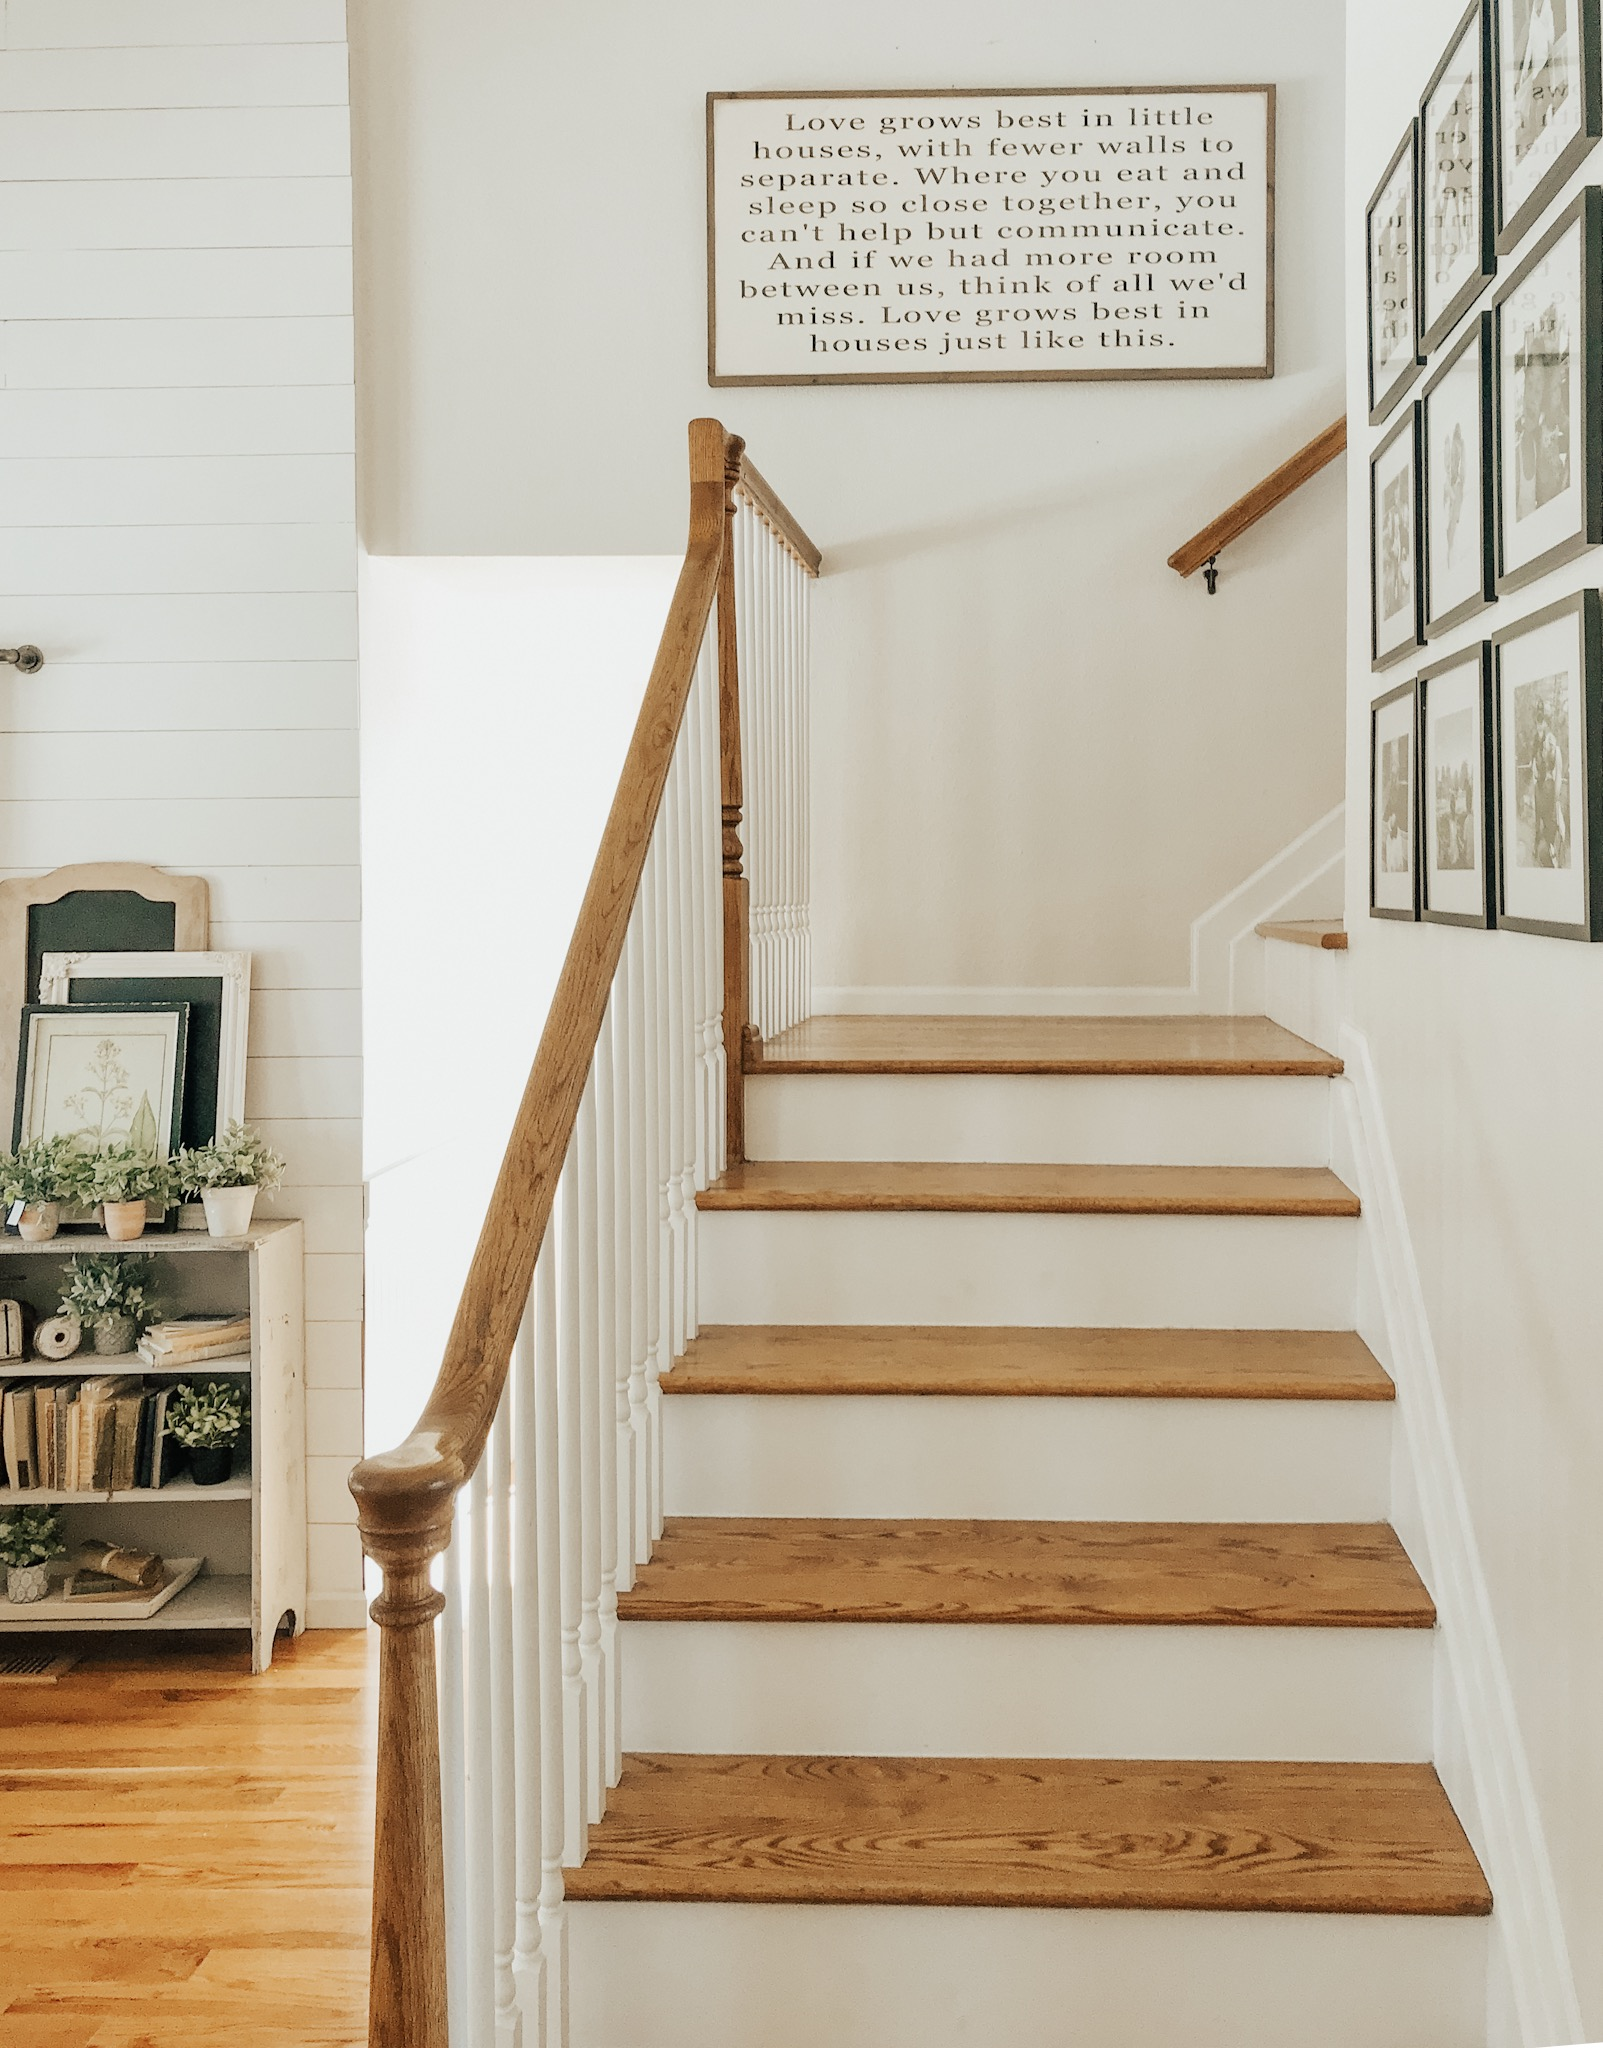 Love grows best in little homes sign. Farmhouse style decor and staircase.